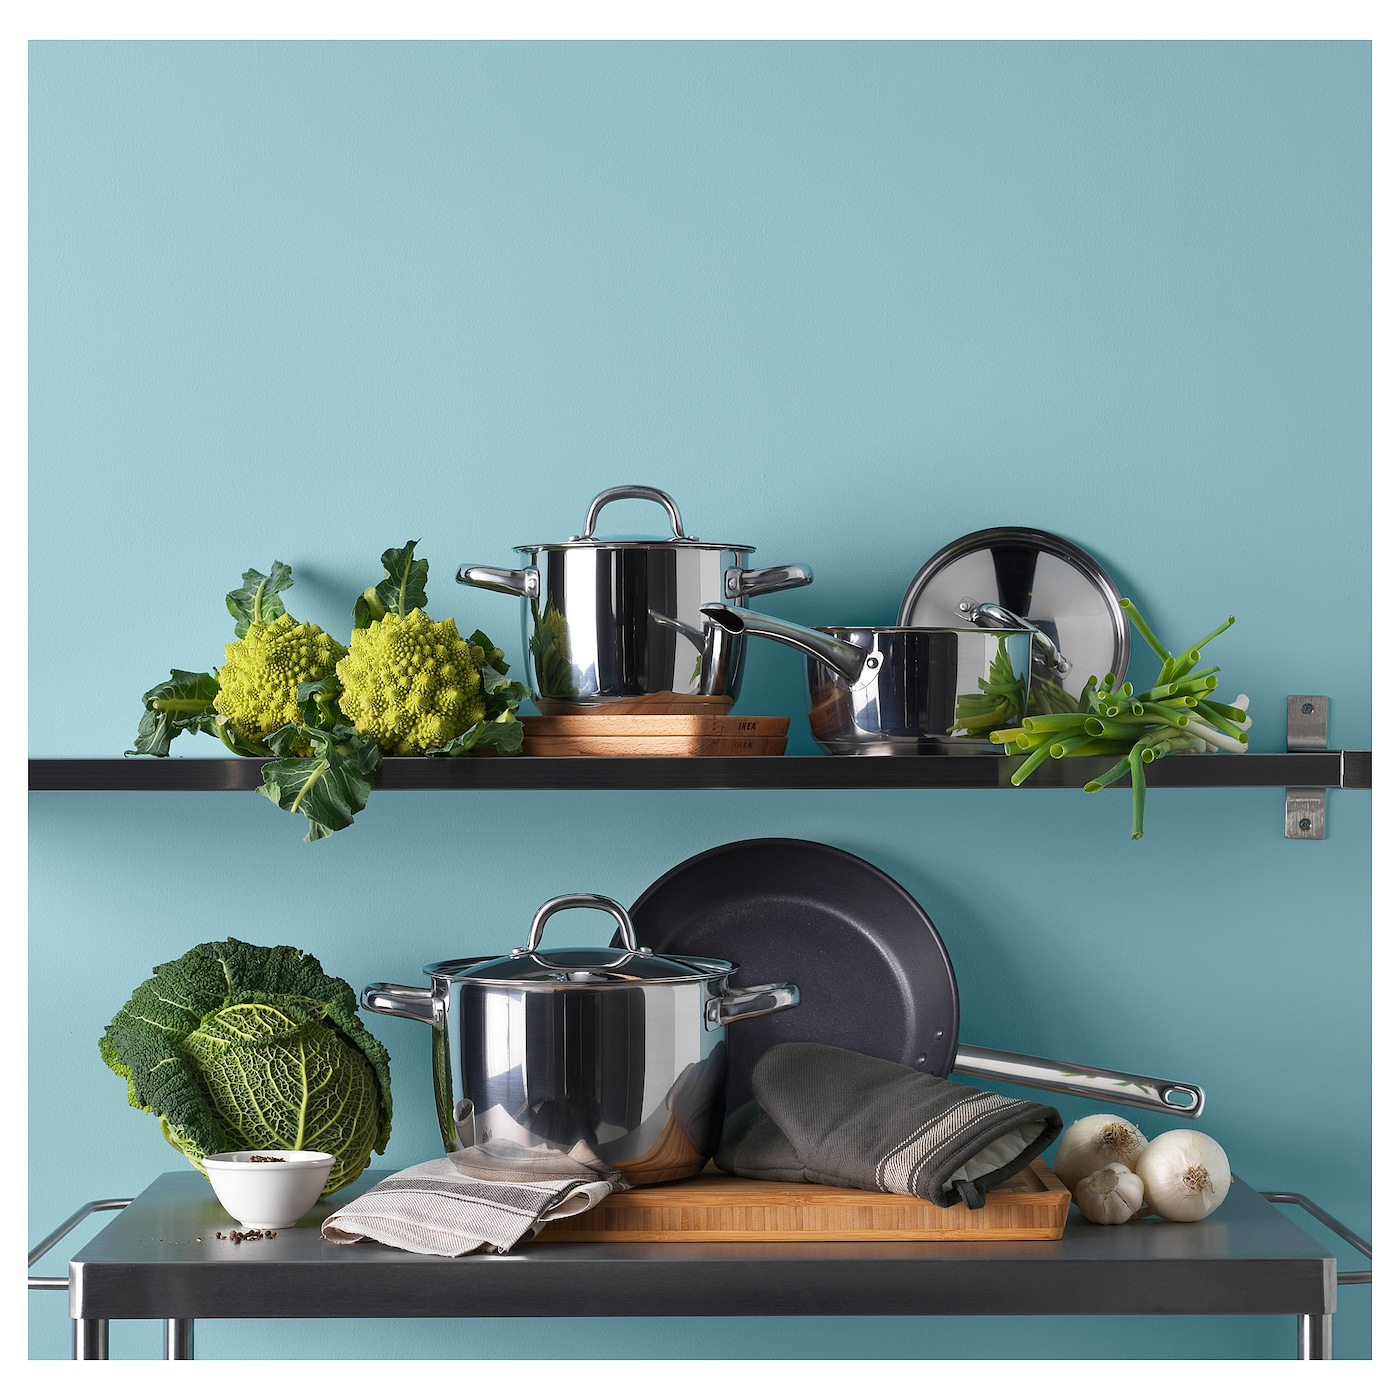 IKEA OUMBÄRLIG 7-piece cookware set Works well on all types of hobs, including induction hob.